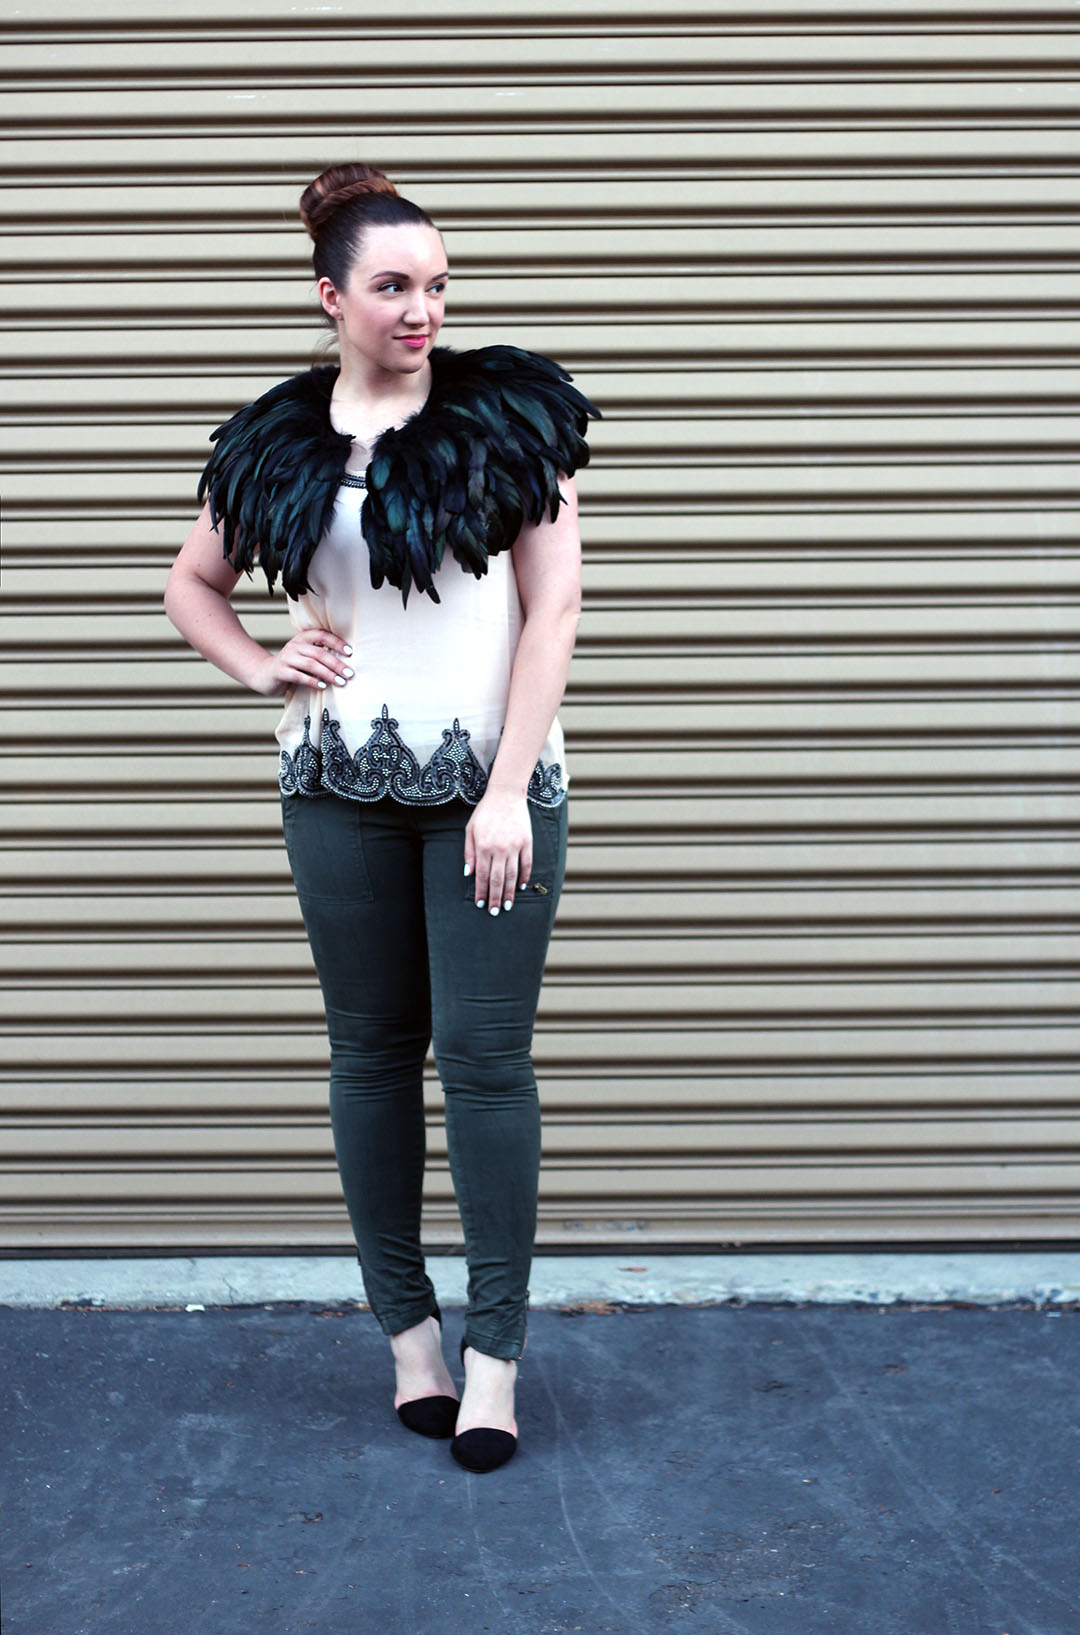 how to wear feathers - Just Add Glam